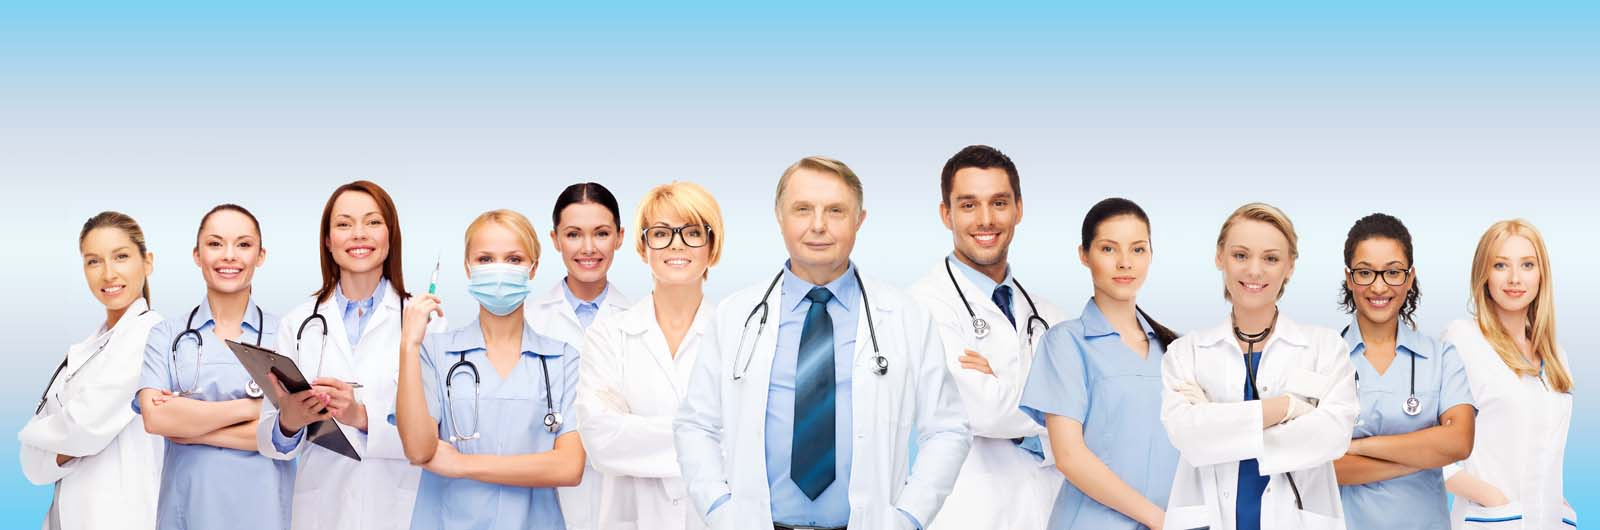 doctors-resource-collaborative-albuquerque-1600x530